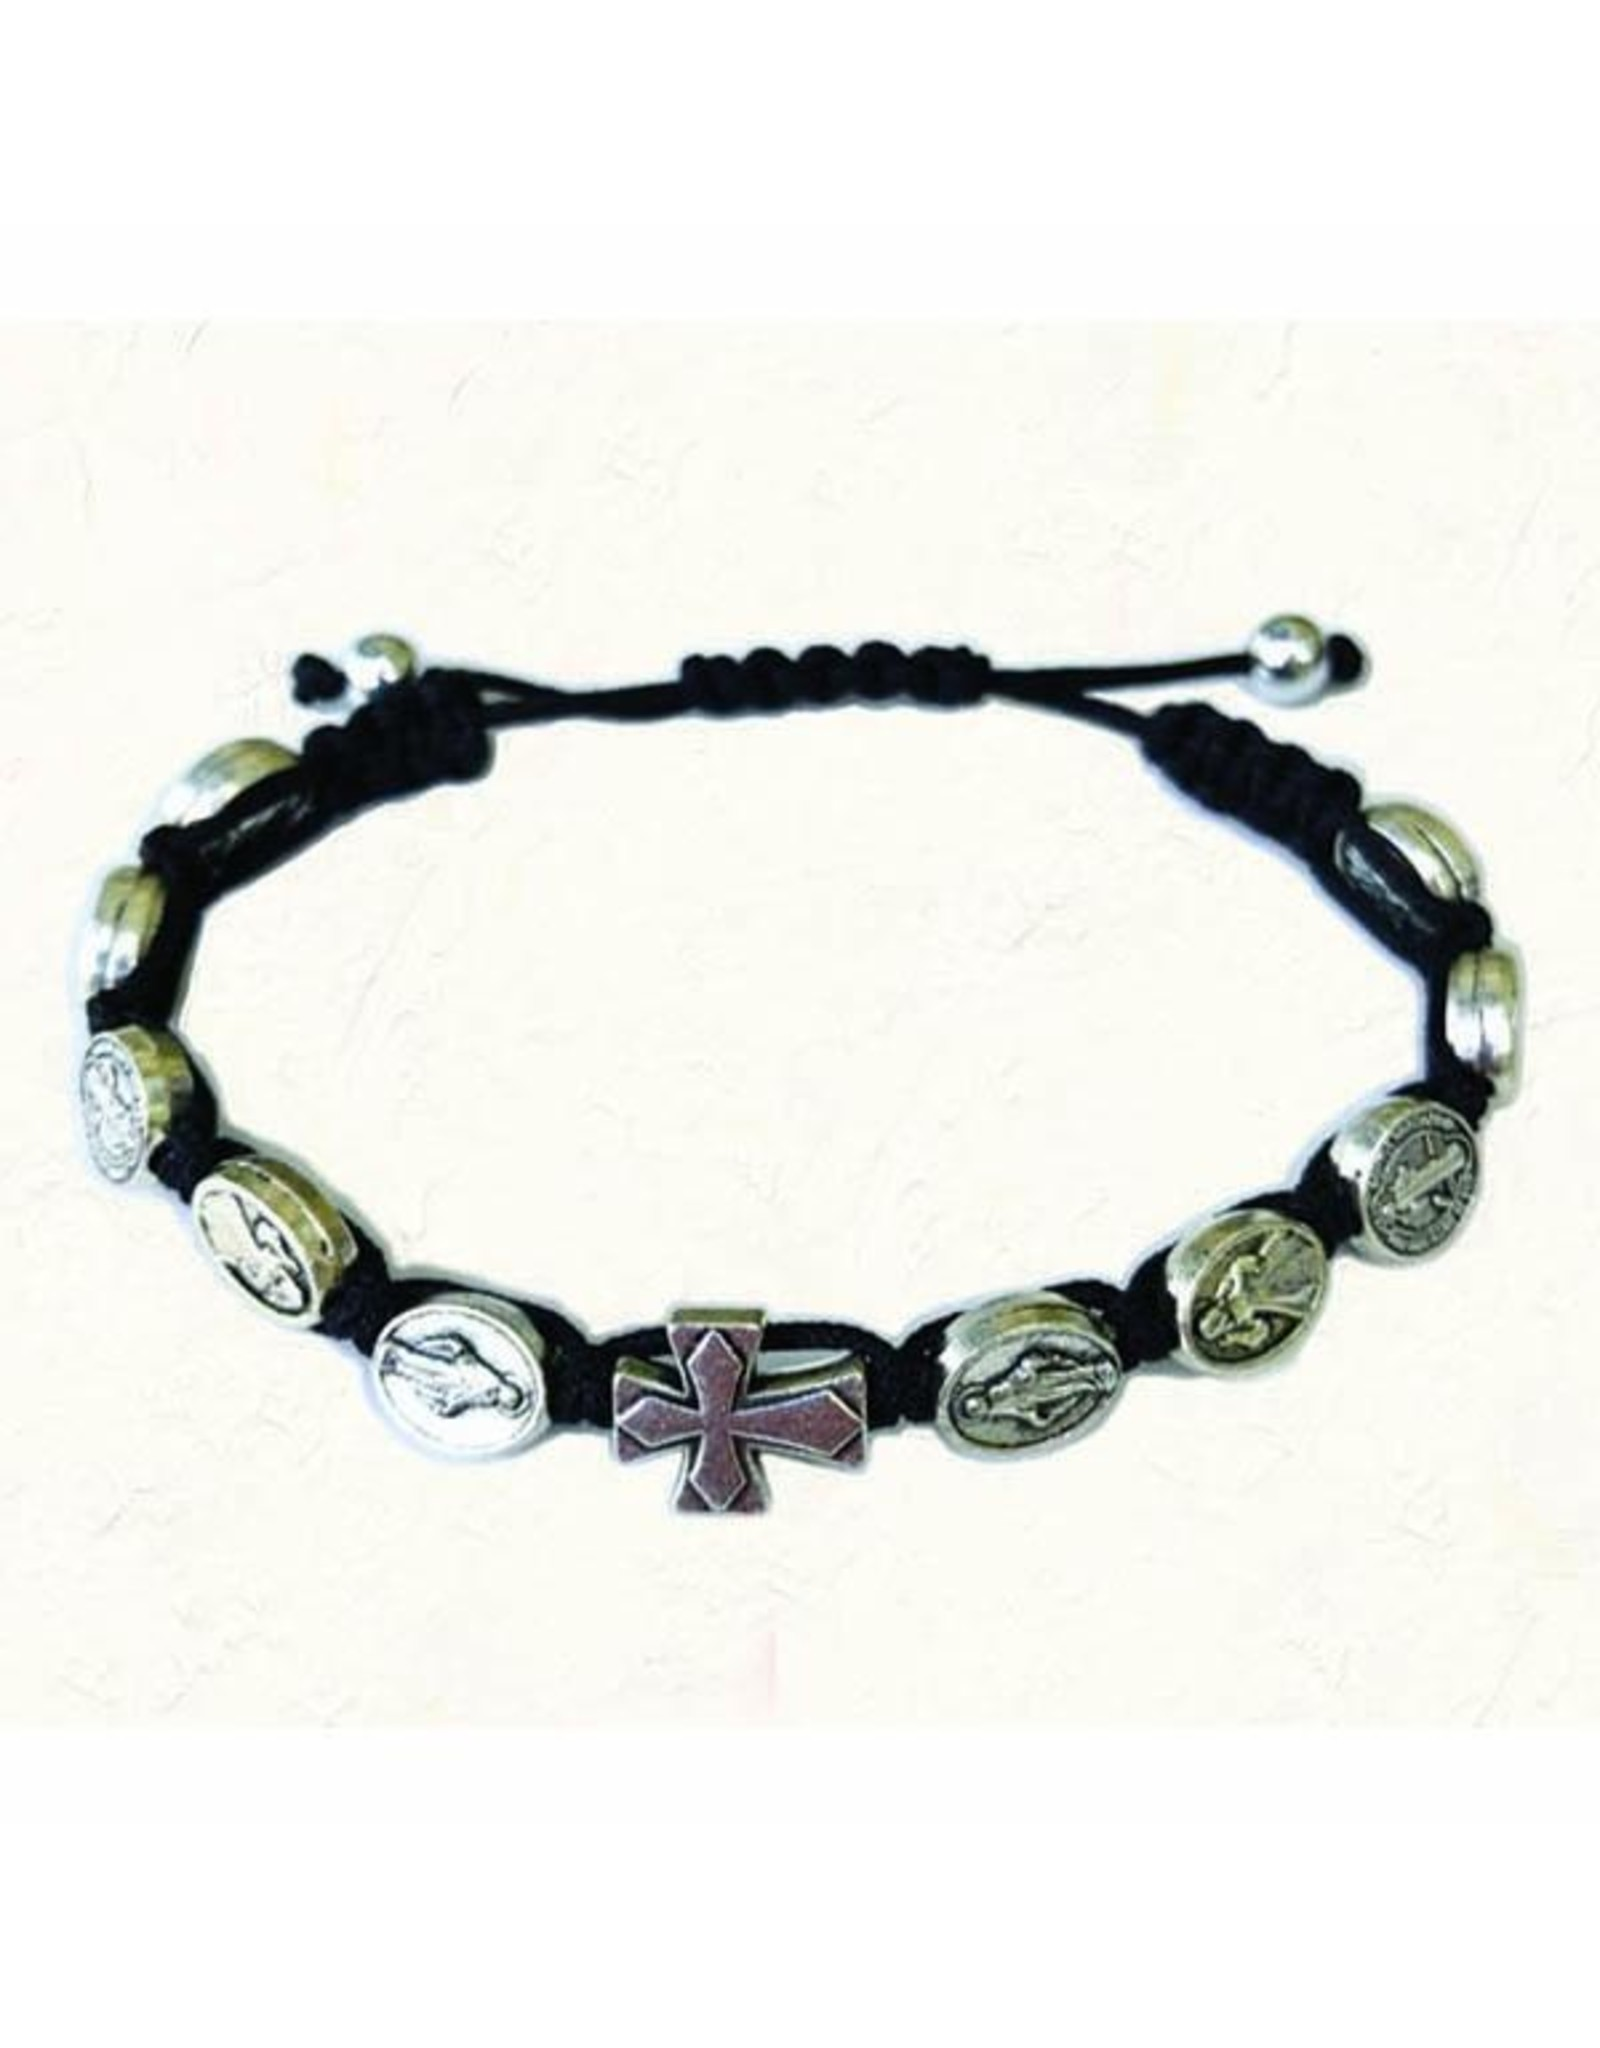 Black Slip Knot Bracelet with Medals and Cross